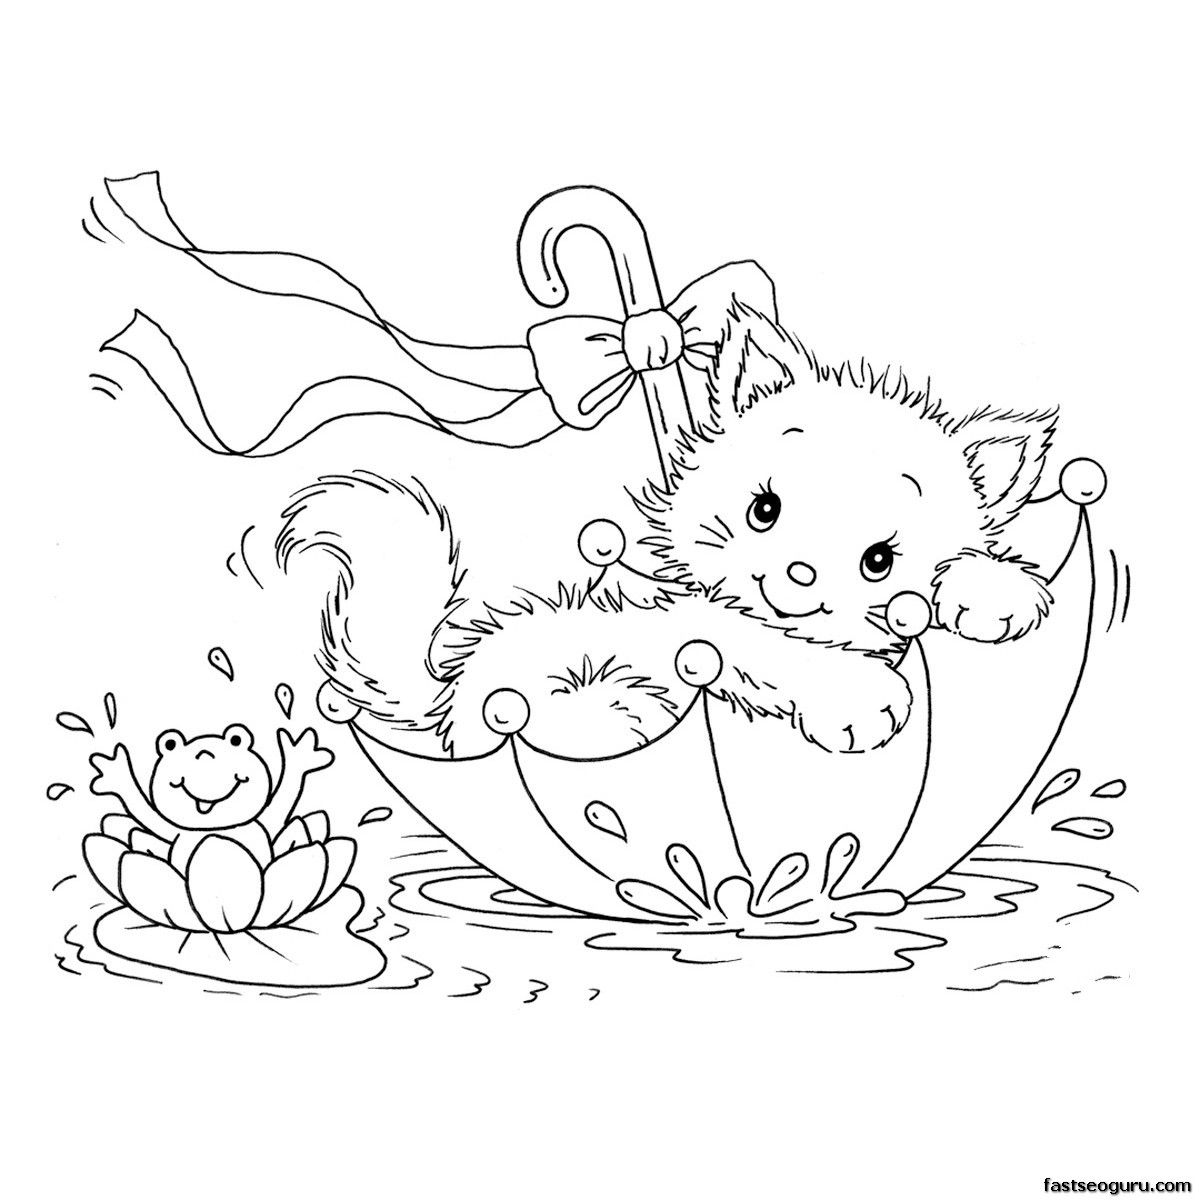 cat coloring pages free large images creative crafts - Cute Colouring Sheets